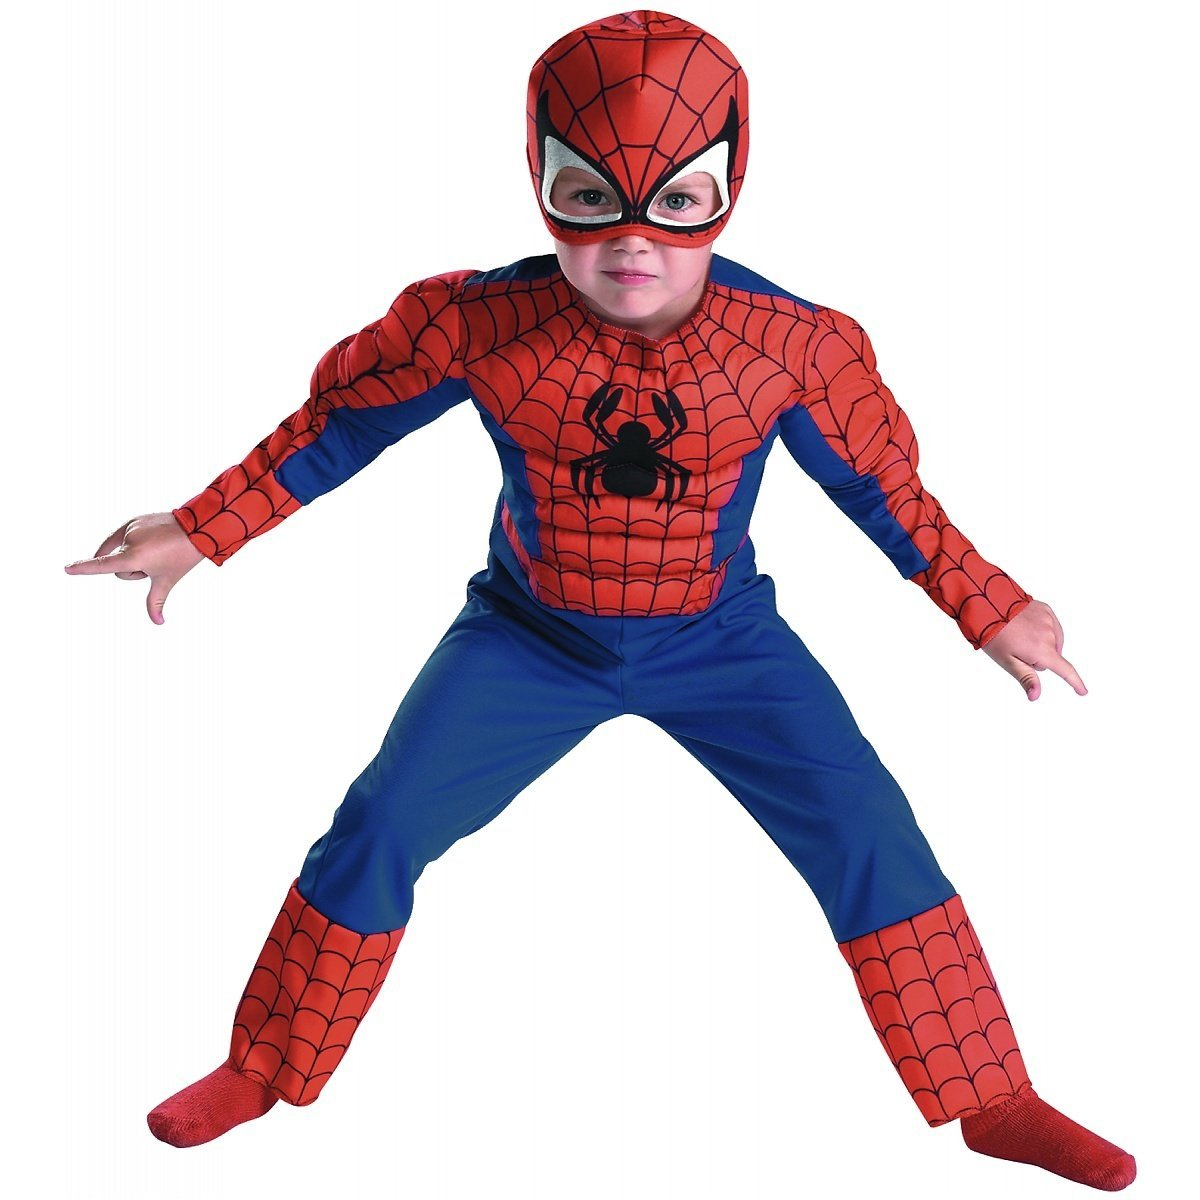 Kids love a superhero, especially a witty and fun character like Spider-Man, so this Spider-Man outfit would be perfect for a kids' Halloween party where you want to make the kids smile, not scream. It would even be a great choice for grade school Halloween parades, .